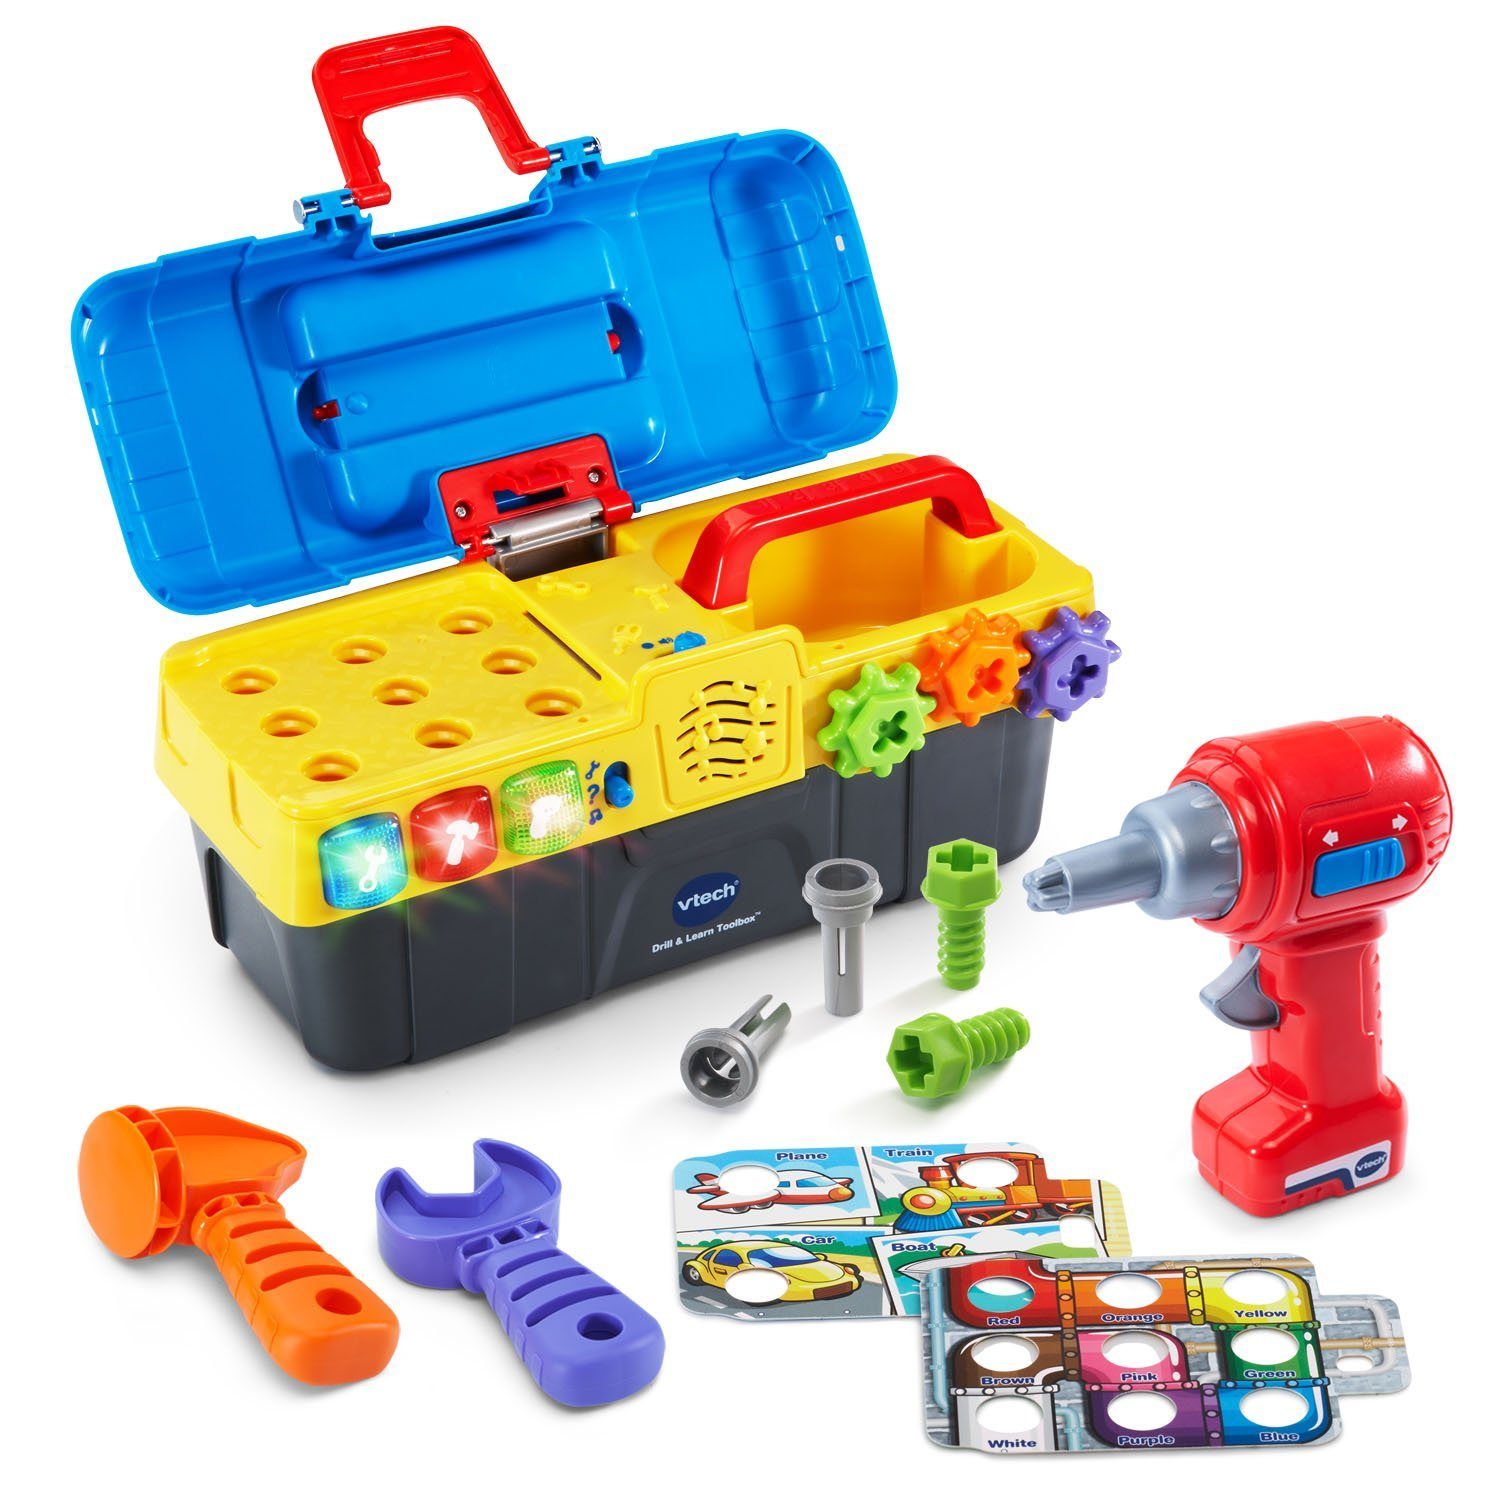 Used Toys For Toddlers : Best toys gift ideas for year old boys reviewed in